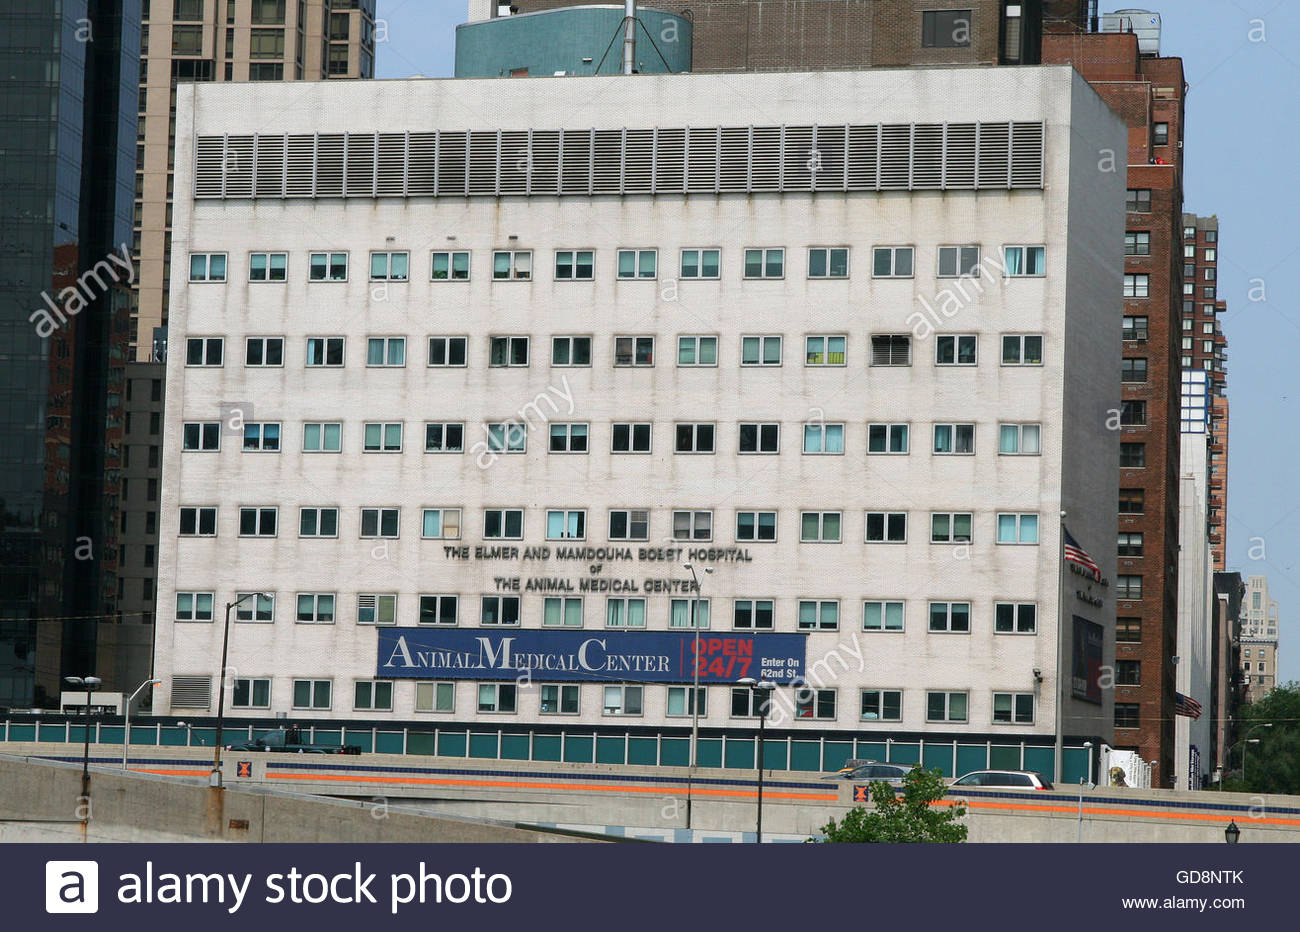 The Elmer and Mamdouha Bobst Hospital, The Animal Medical Center of New York, 62nd Street. East River, Upper East Stock Photo